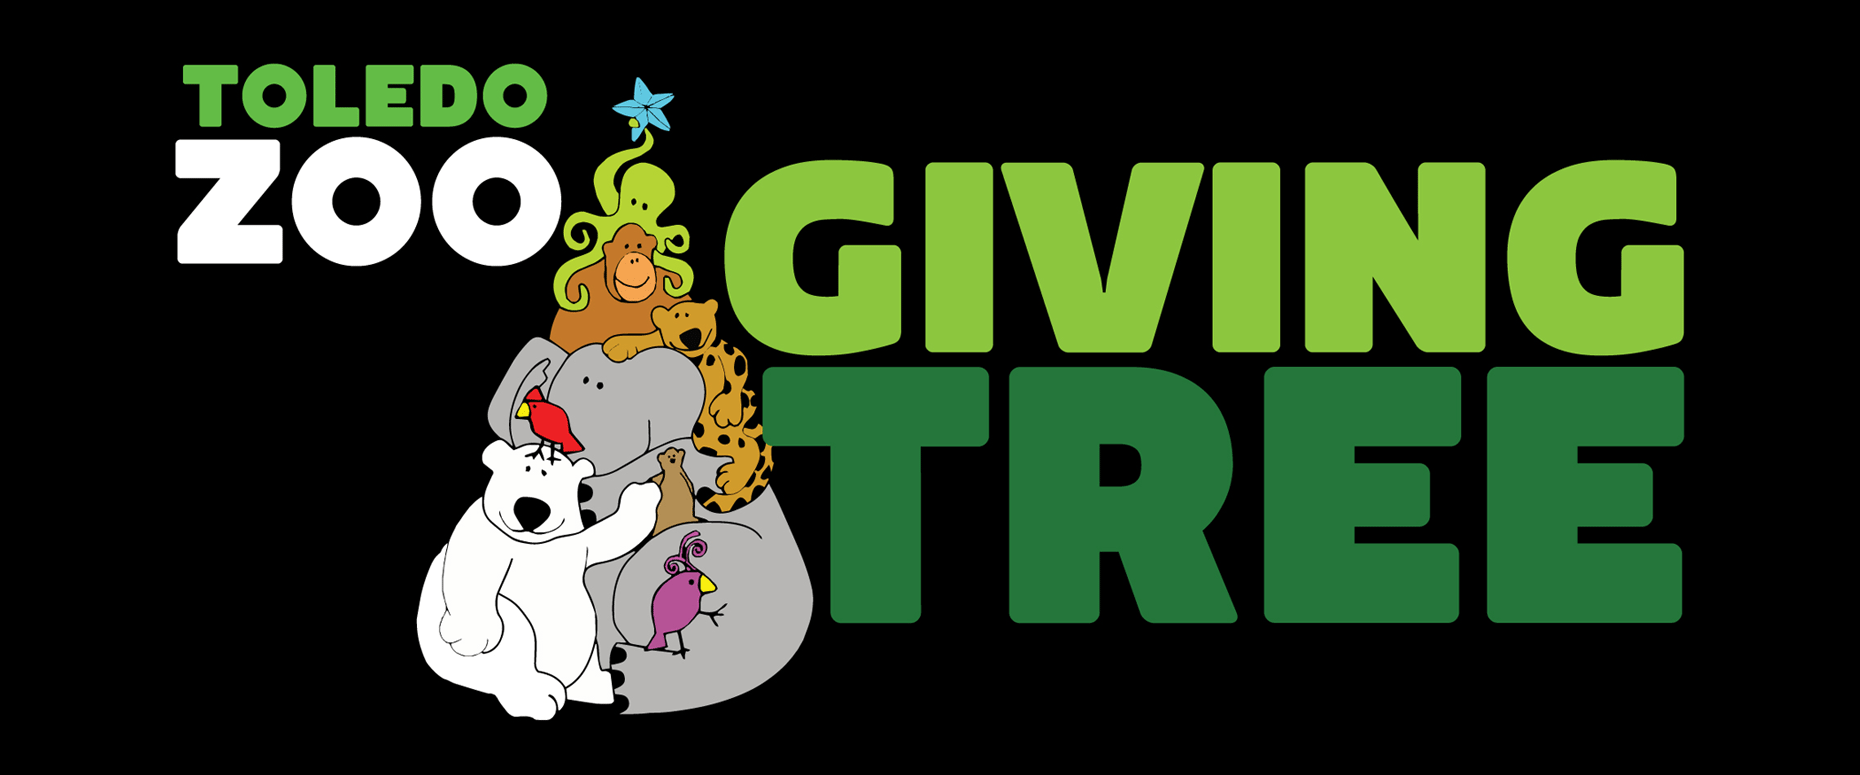 Giving-tree-1860-x-775-1